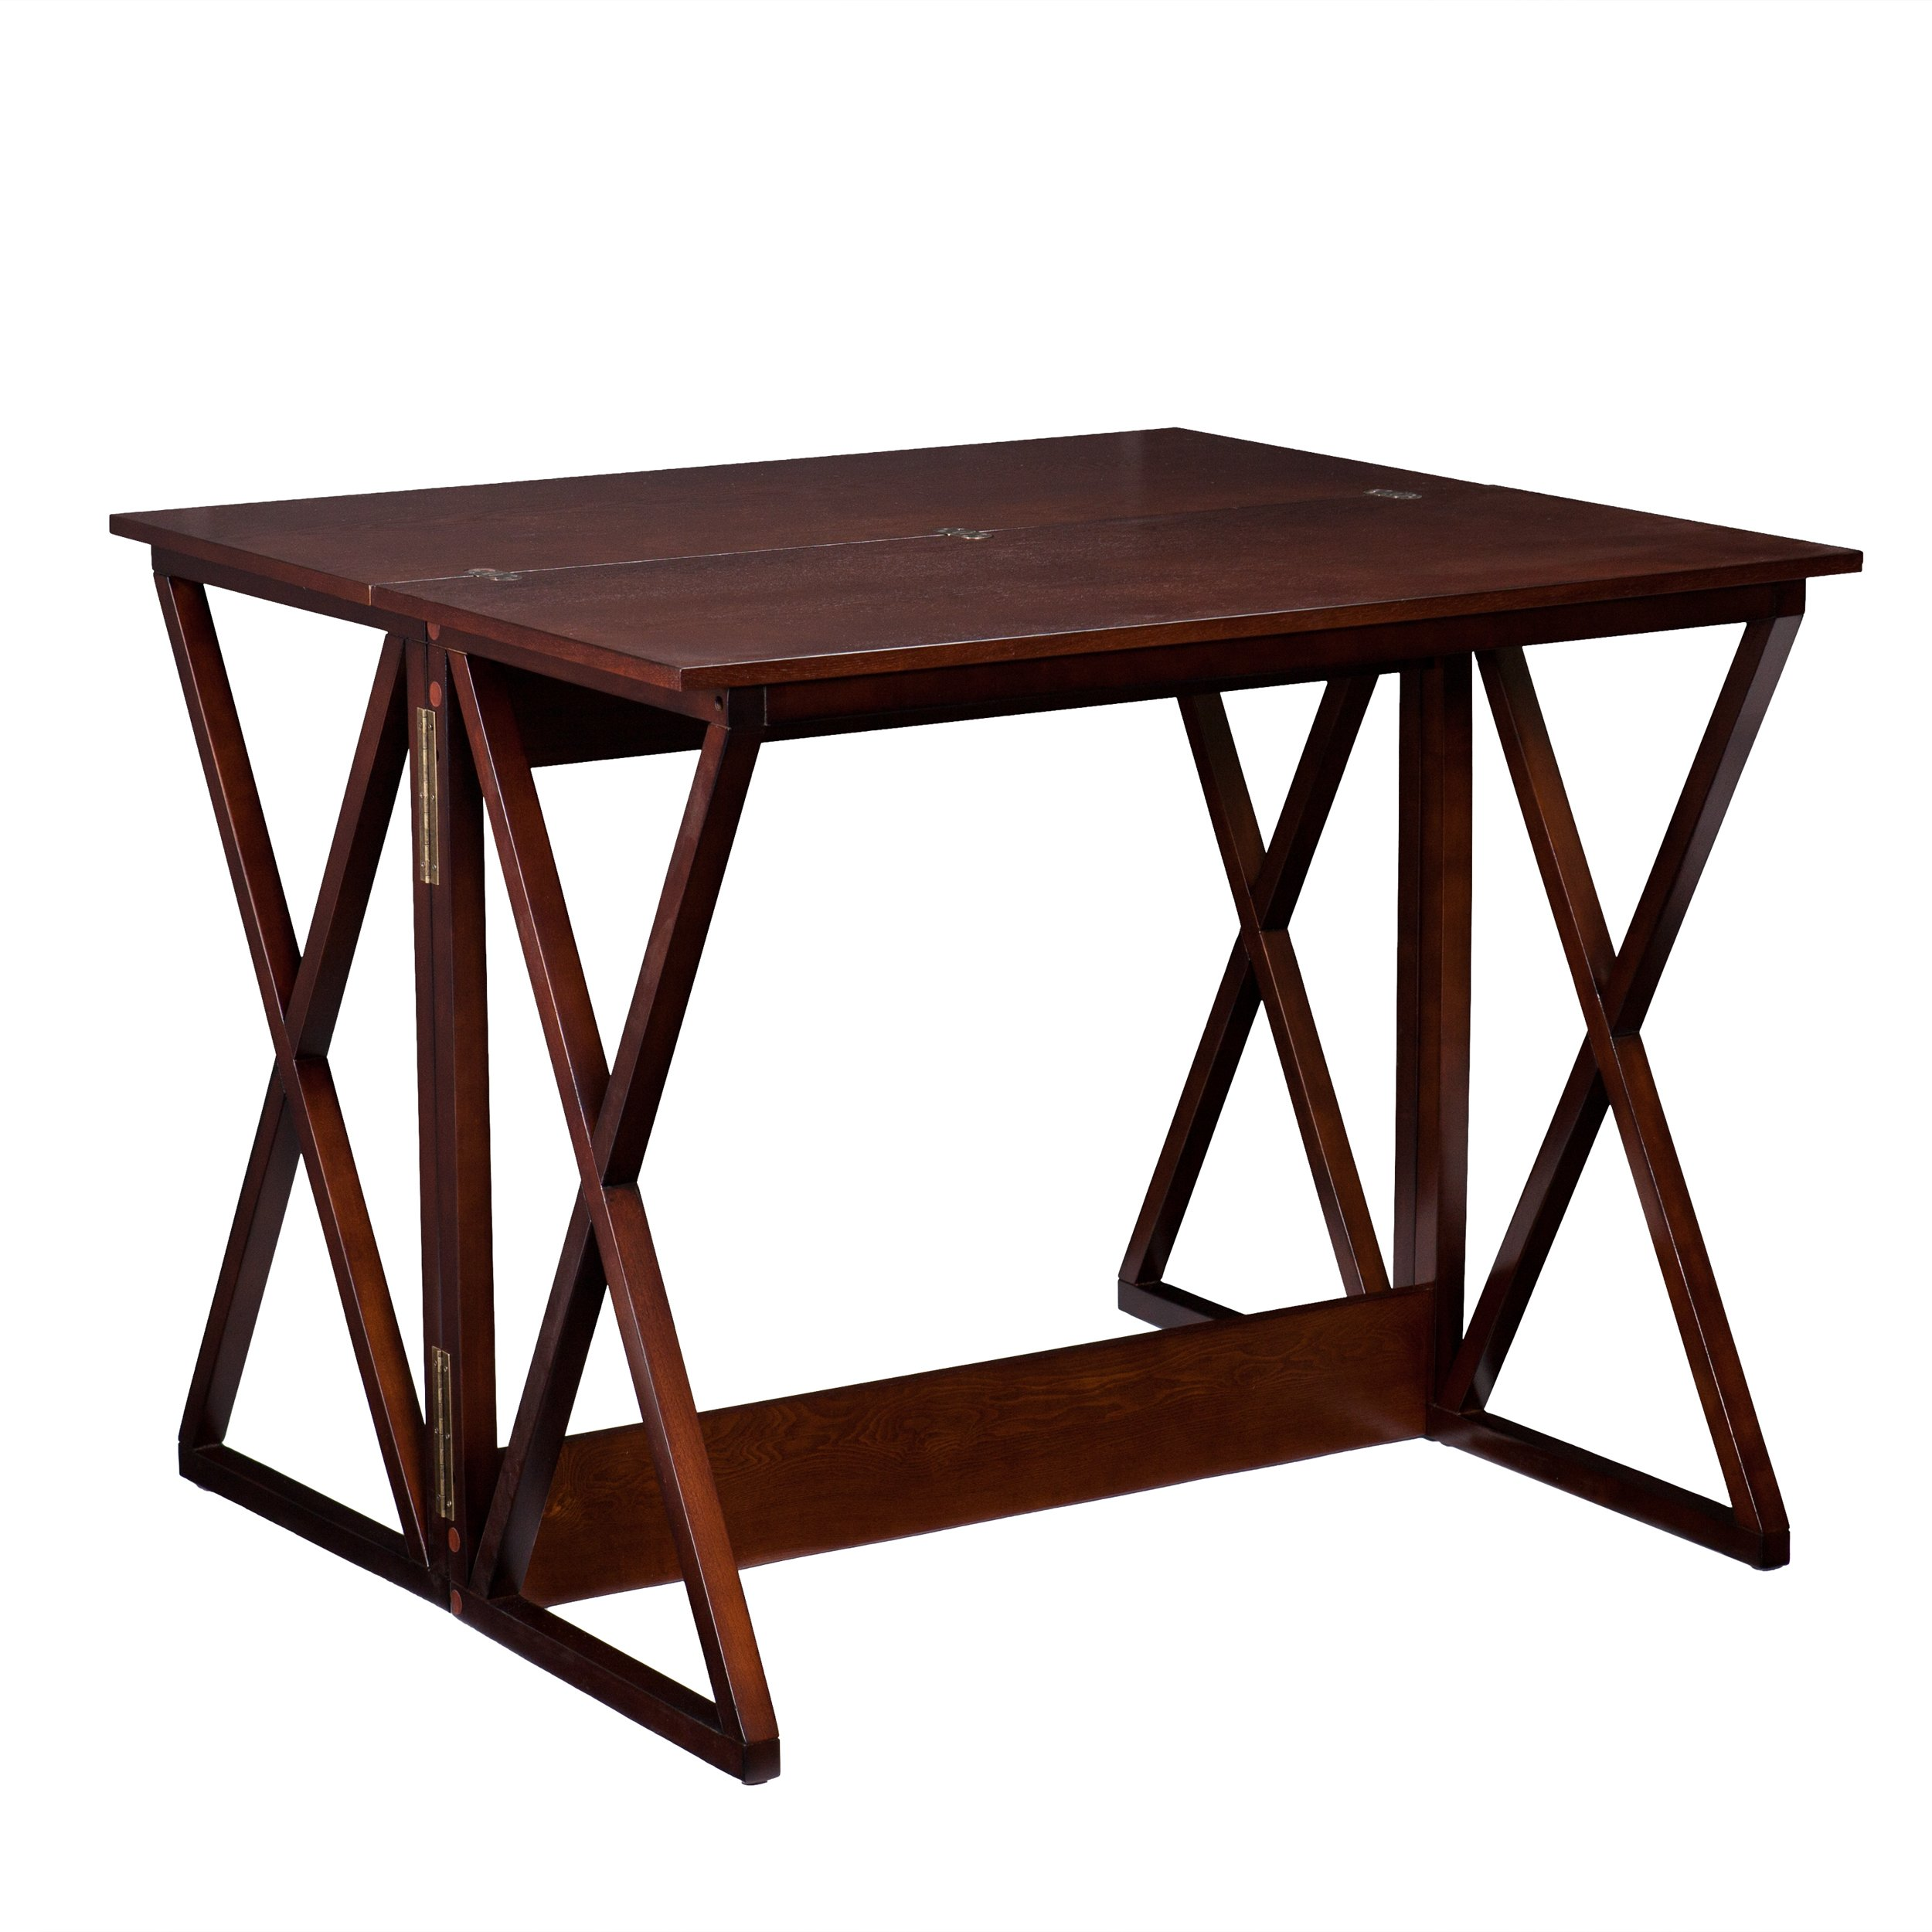 Derby Convertible Console Dining Counter Table - Seats 2 to 4 - Expresso Wood Finish